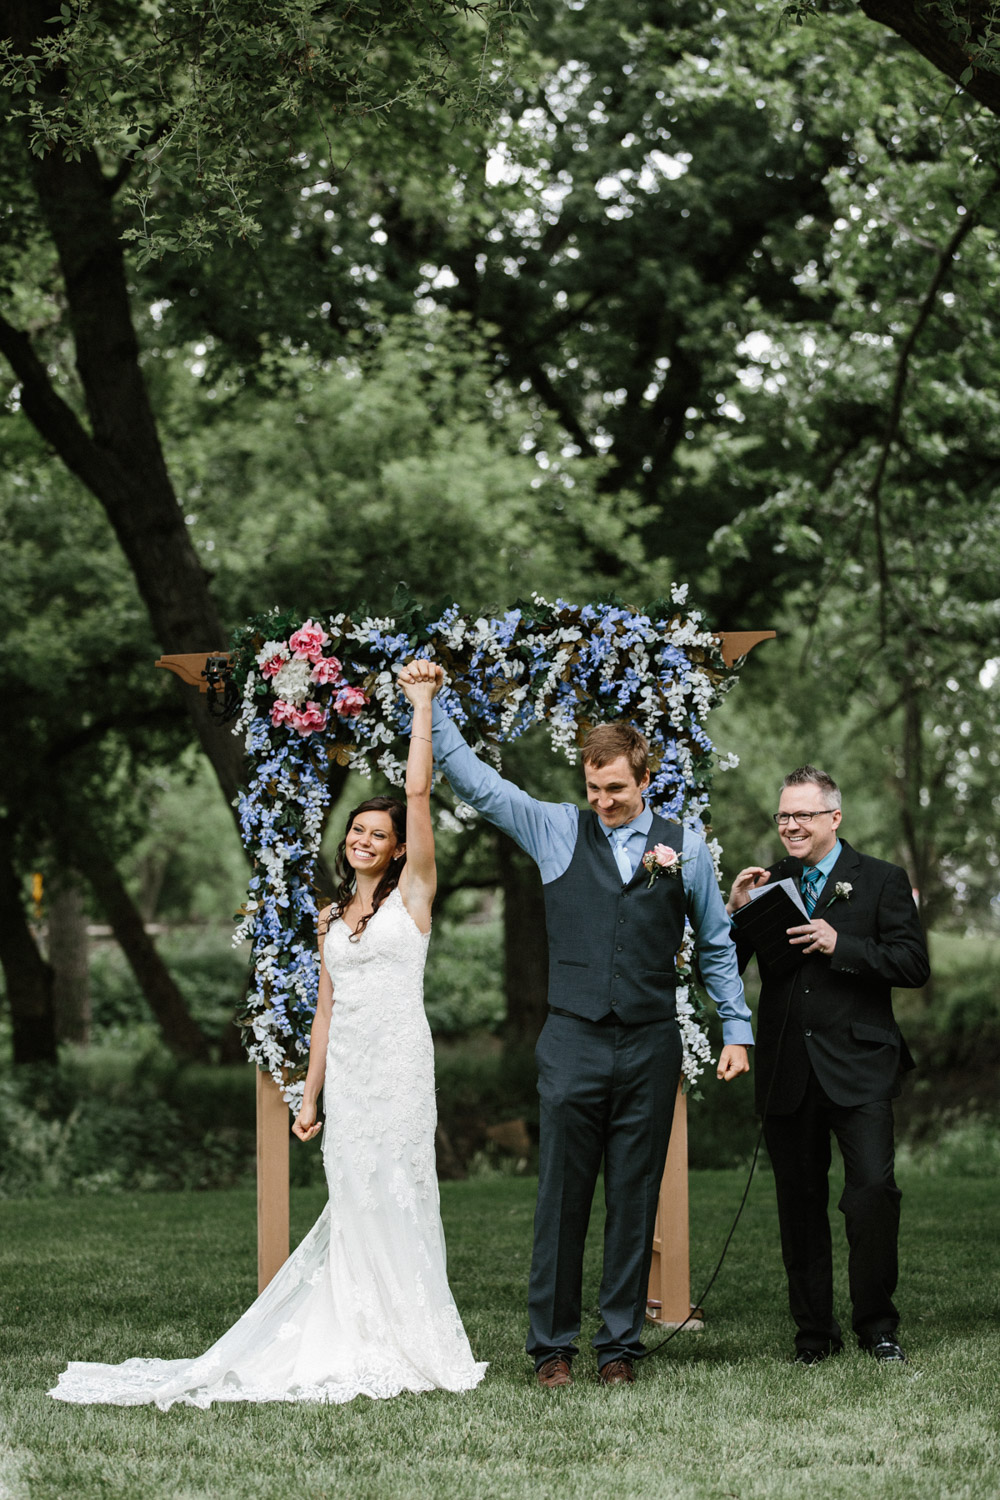 Outdoor_Wedding_SiouxFalls_MaryJoWegnerArboretum_Photographer_Calli&Jon_091.jpg